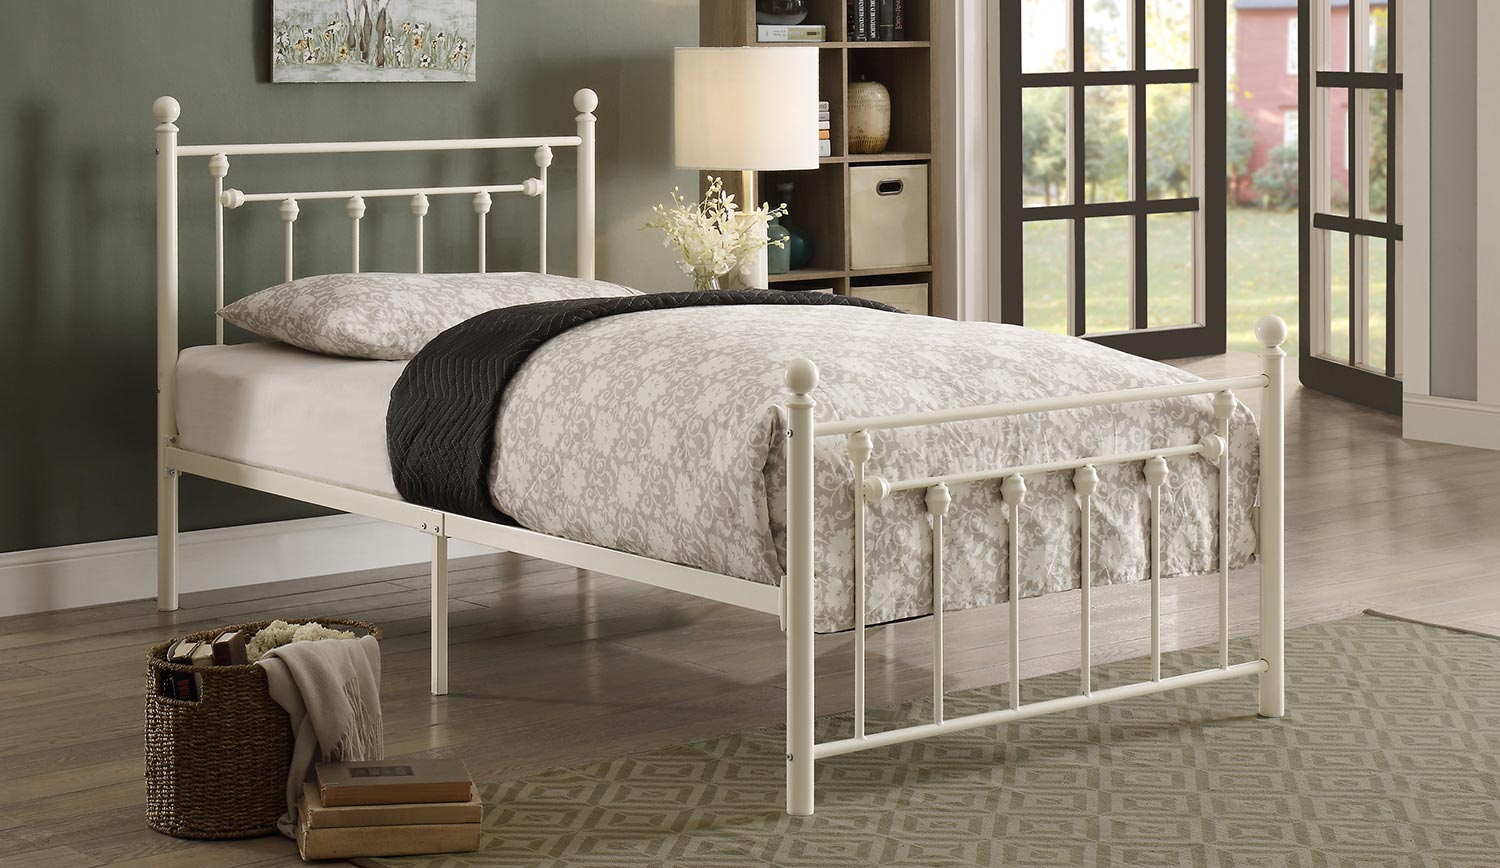 Homelegance Lia Metal Platform Bed - White